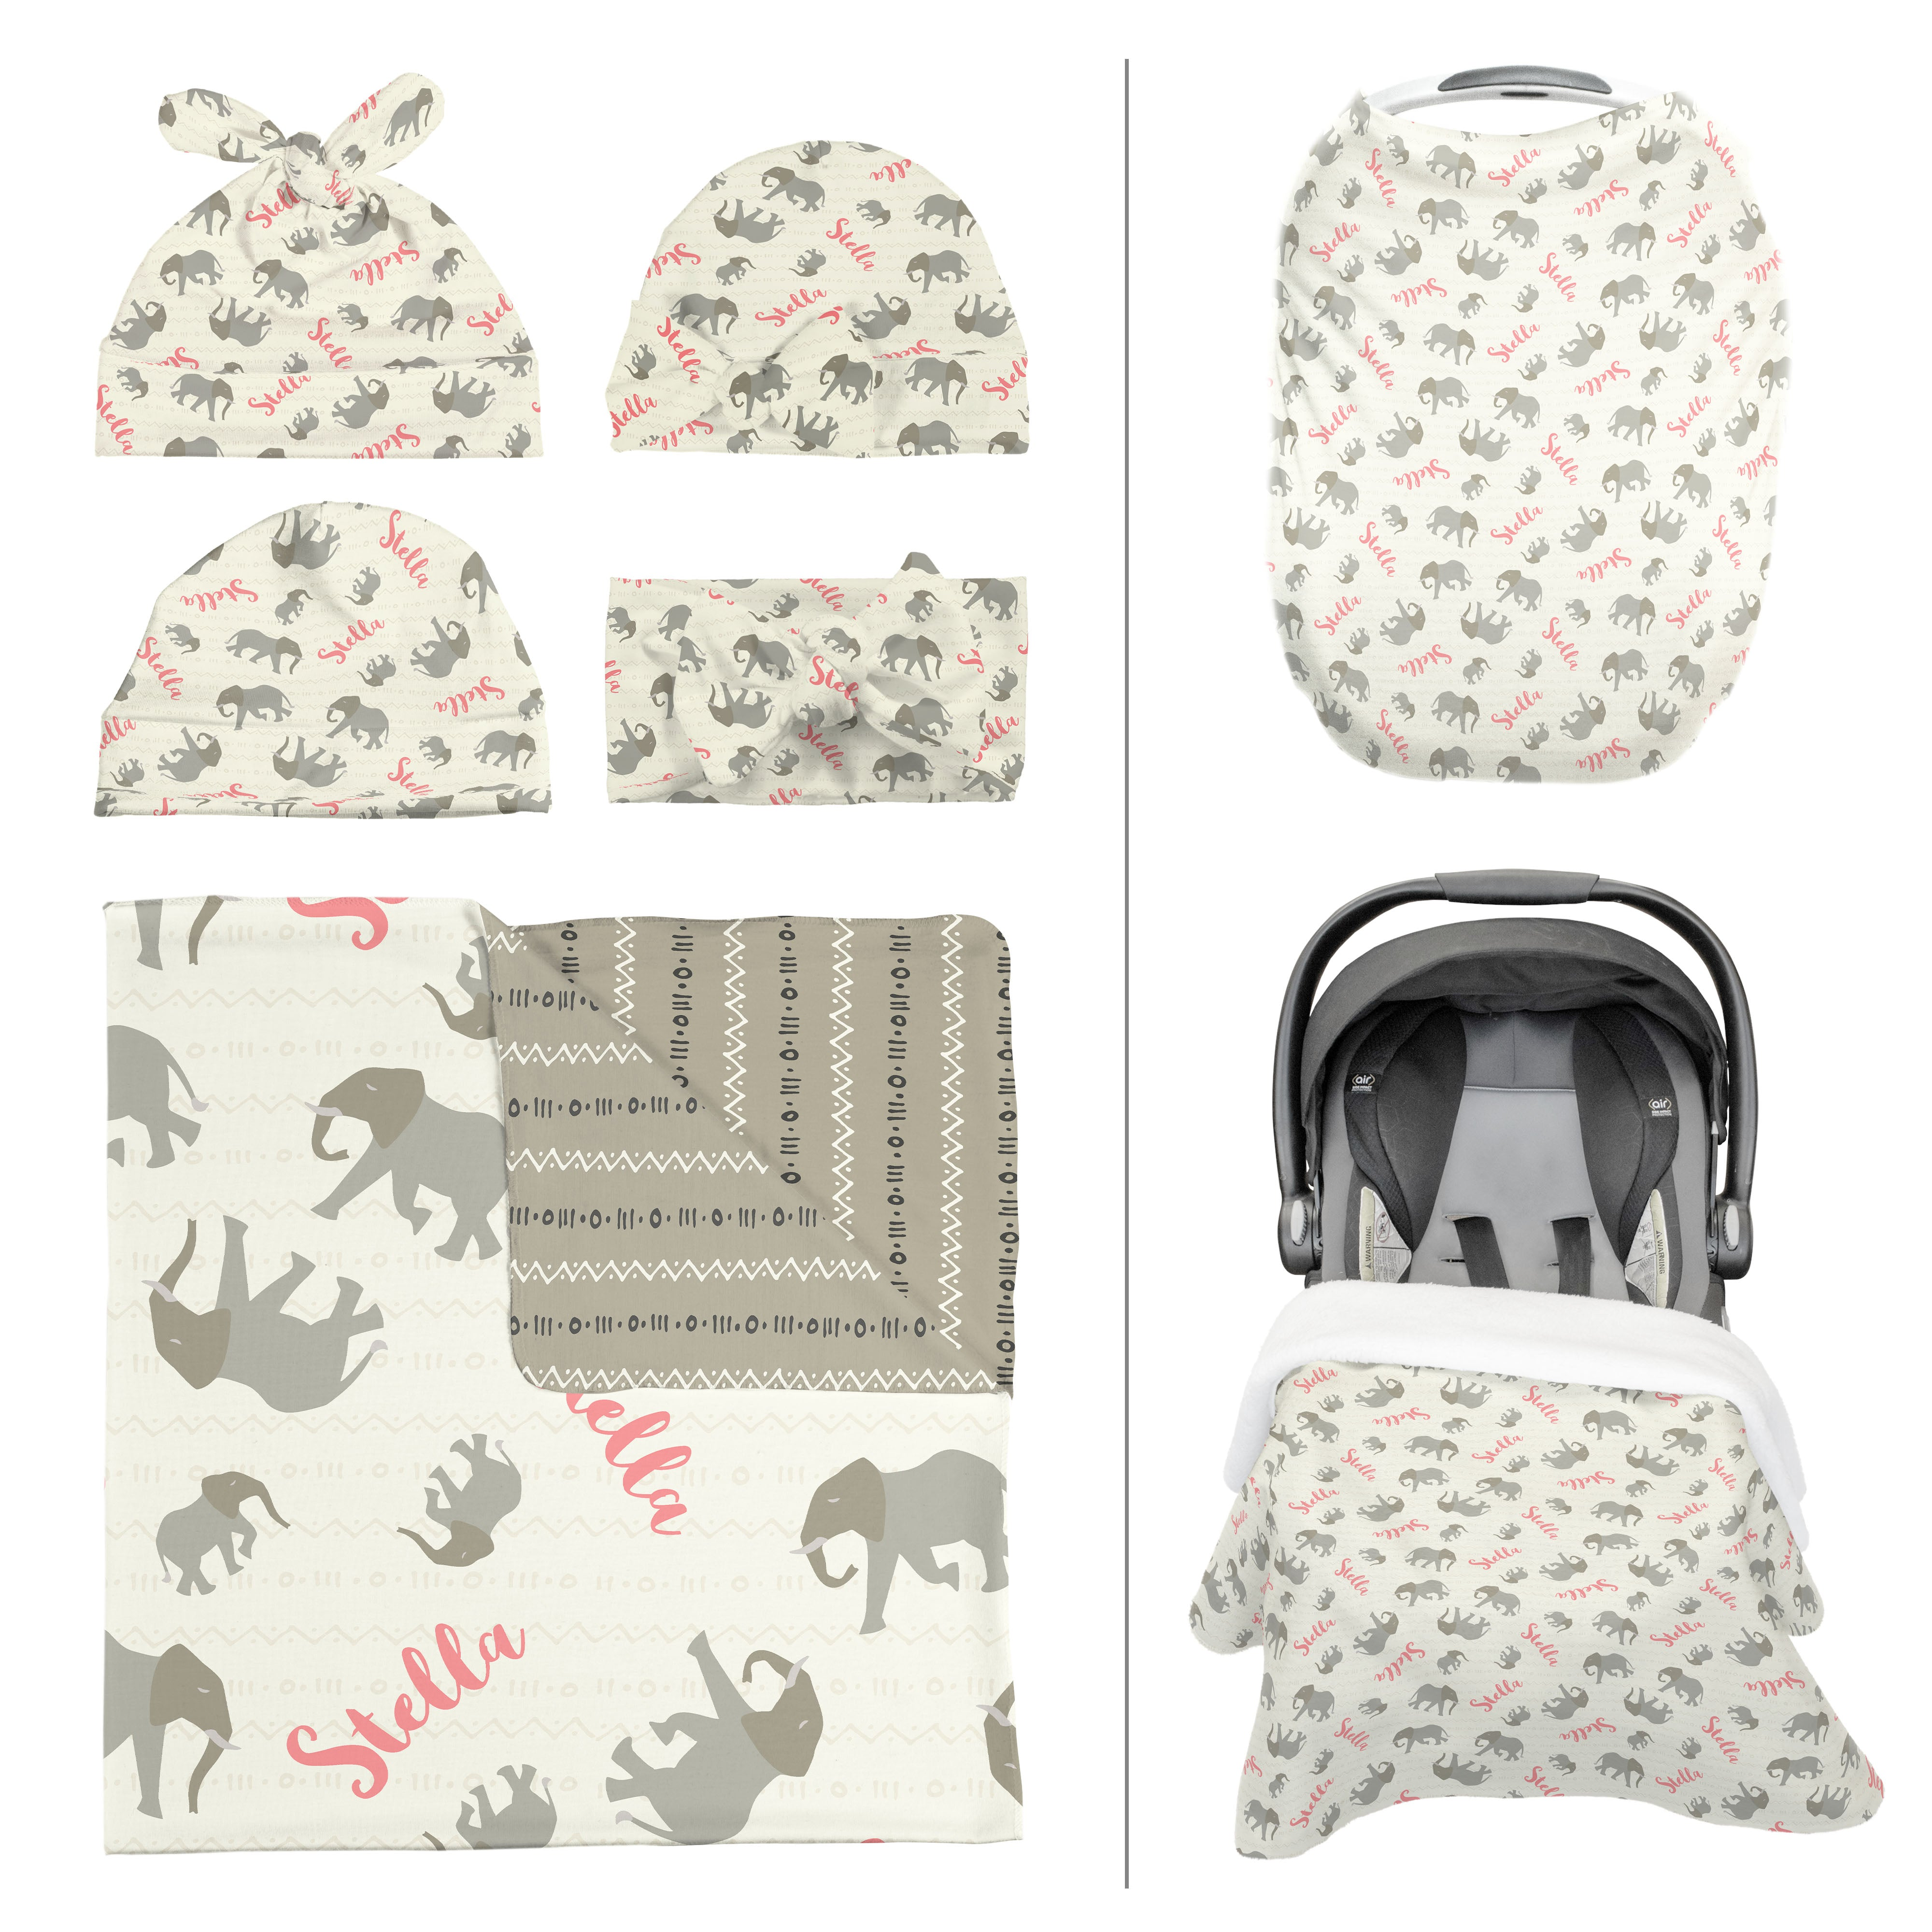 Nyala's Elephant Expedition | Take Me Home Bundle